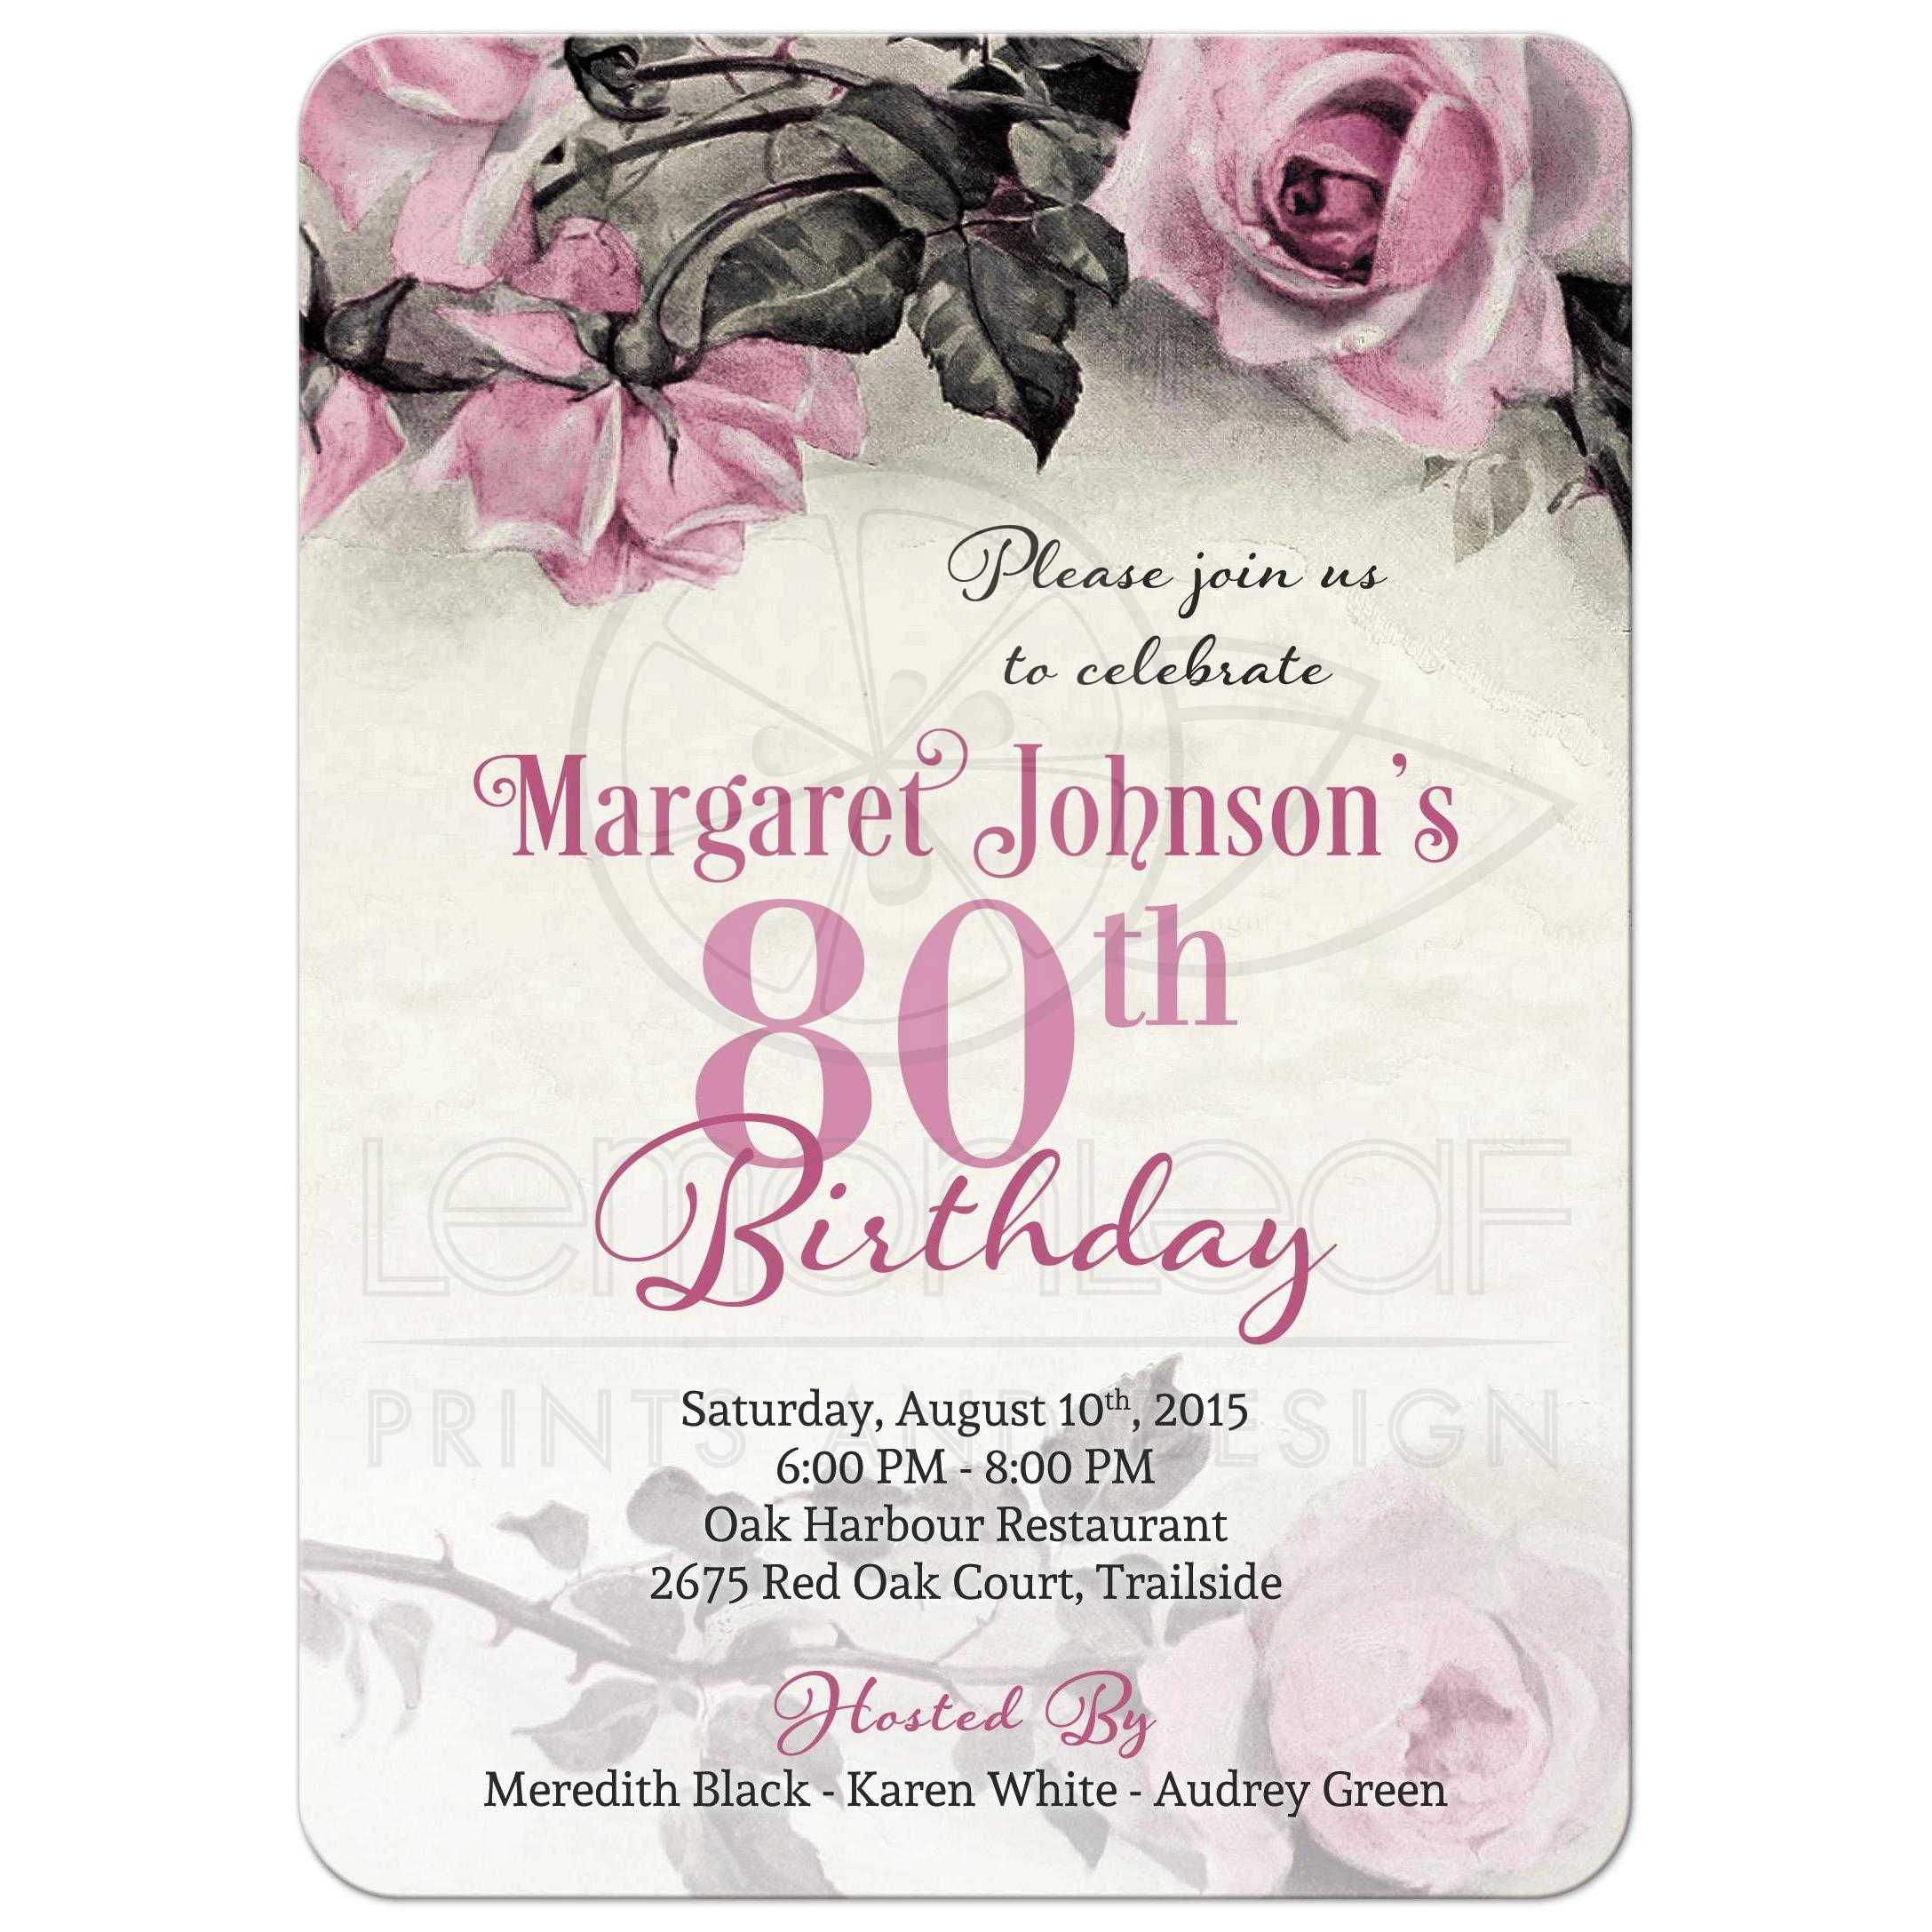 th birthday invitation  vintage pink grey rose, Birthday invitations